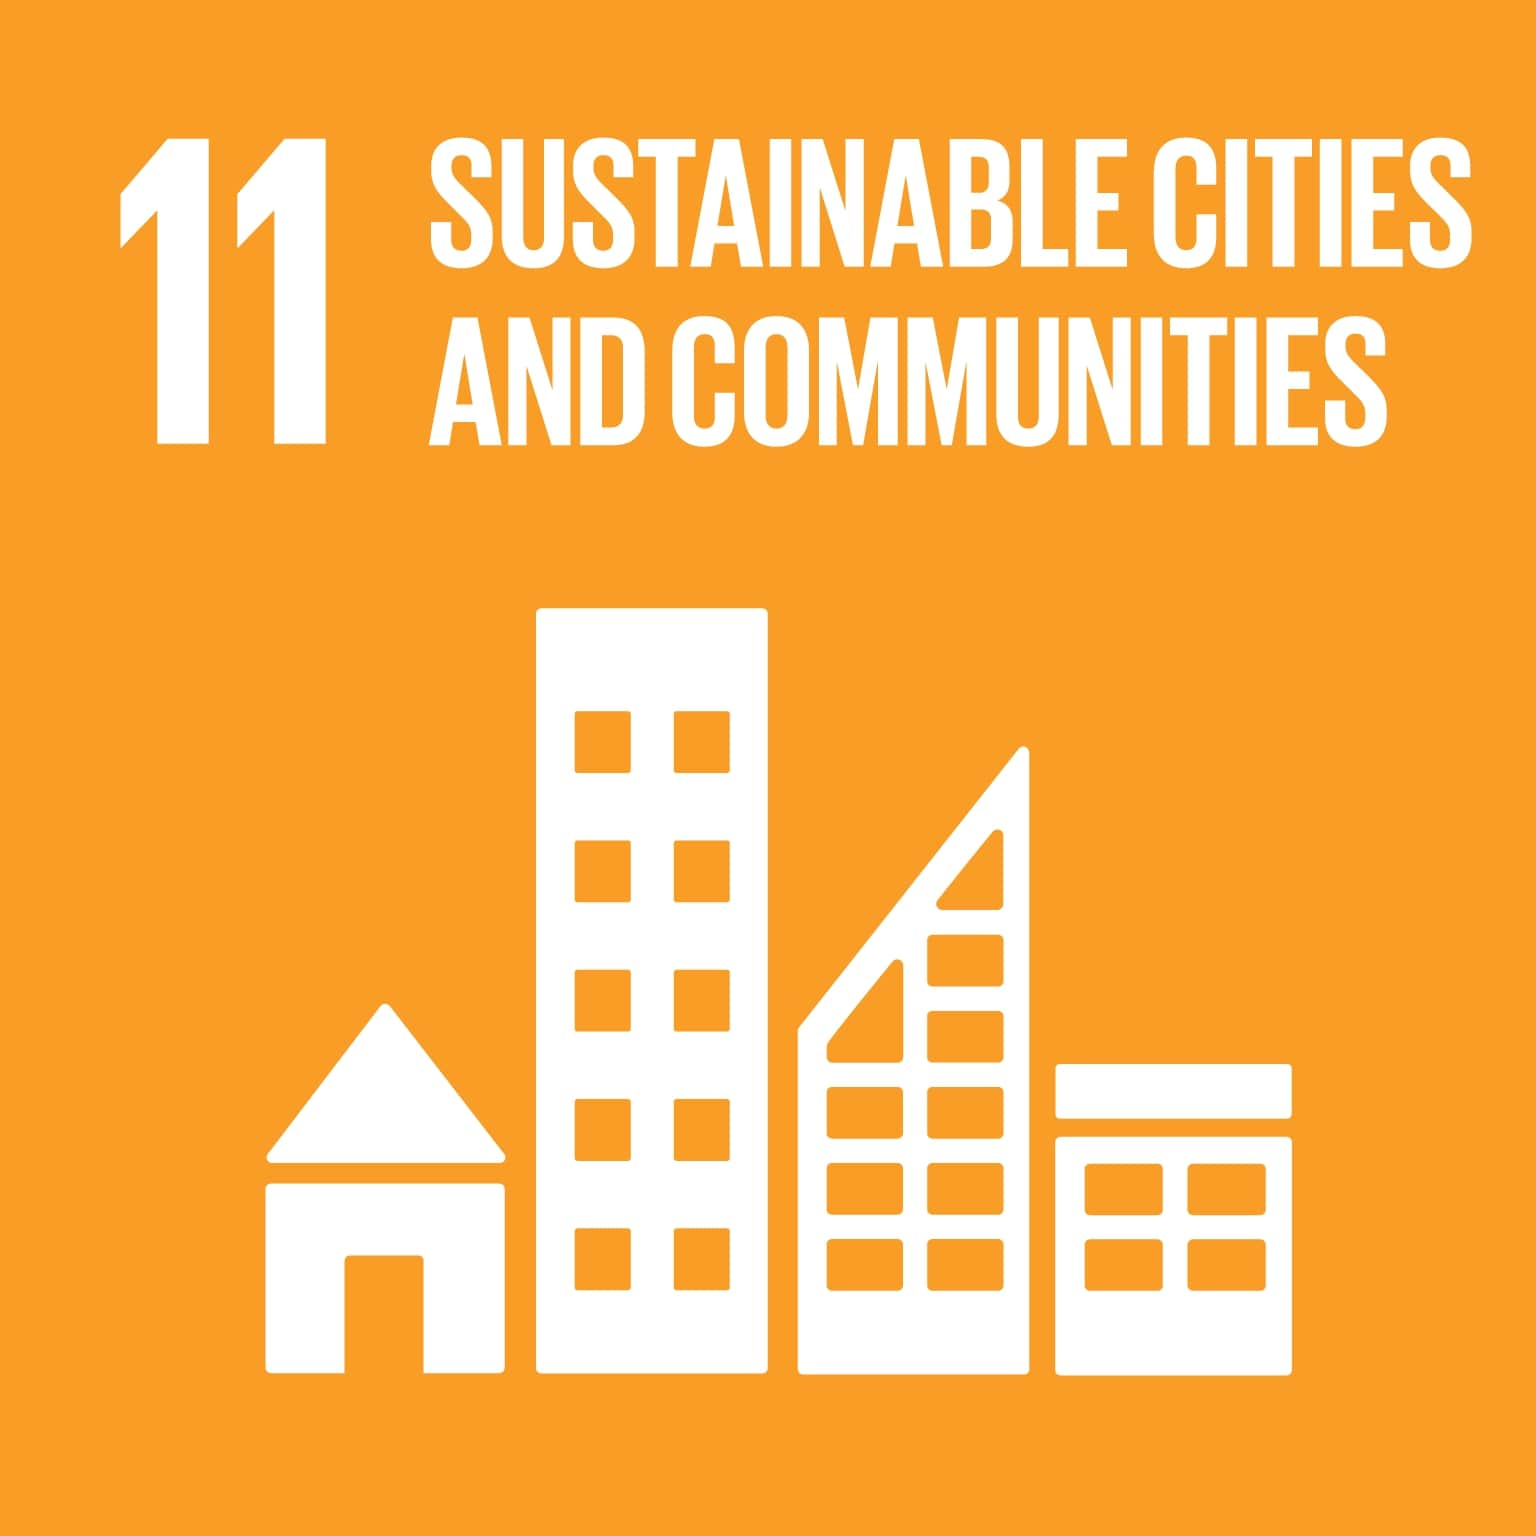 SUSTAINABLE DEVELOPMENT GOAL 11: Make cities and human settlements inclusive, safe, resilient and sustainable